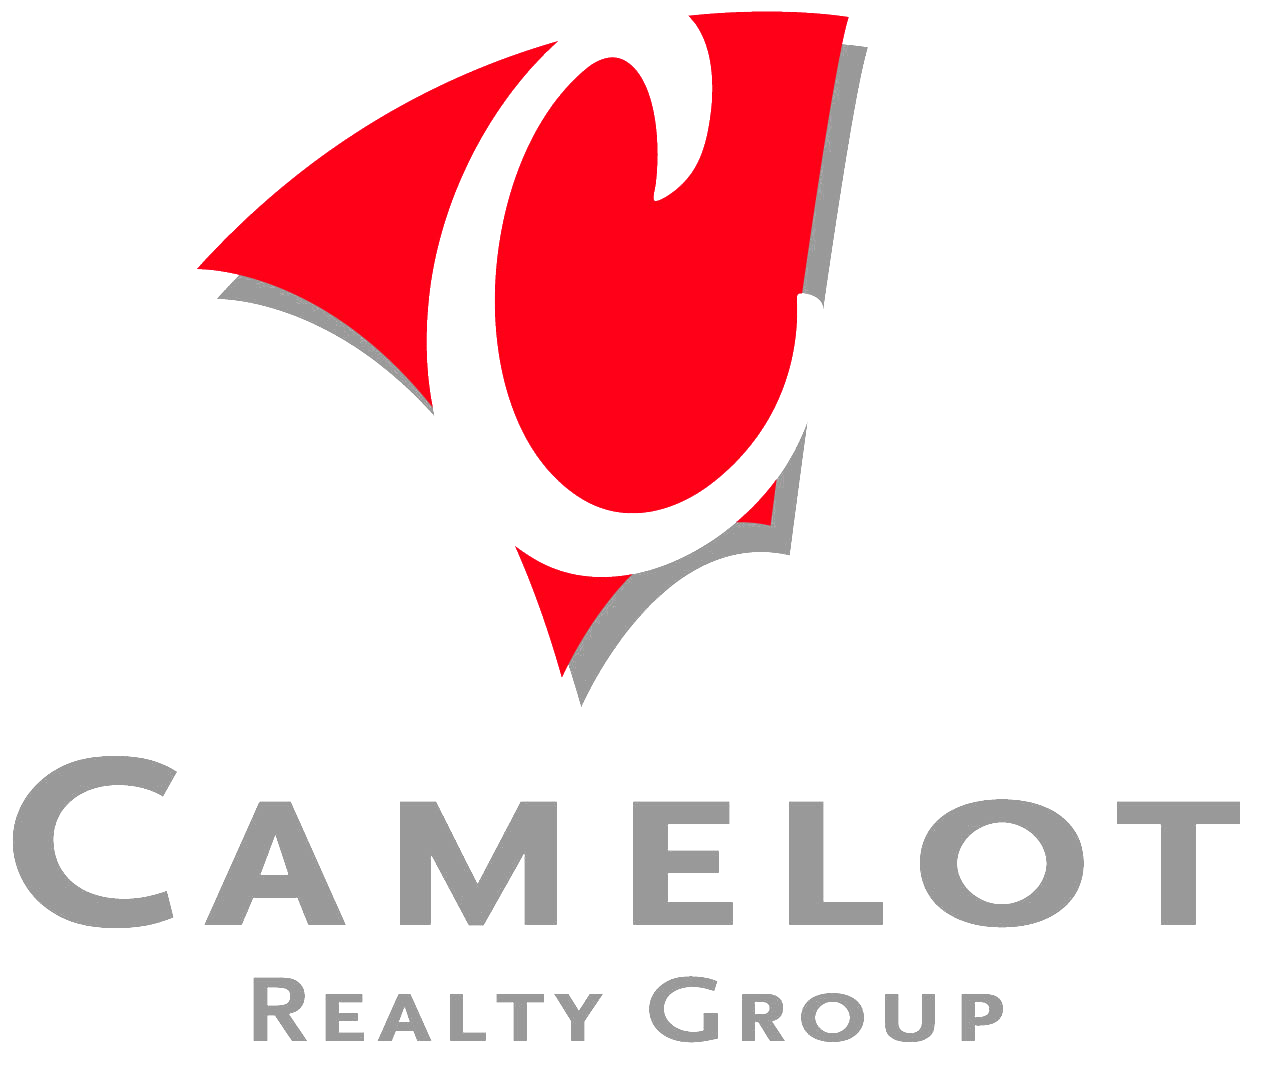 Mary Franco - Camelot Realty Group